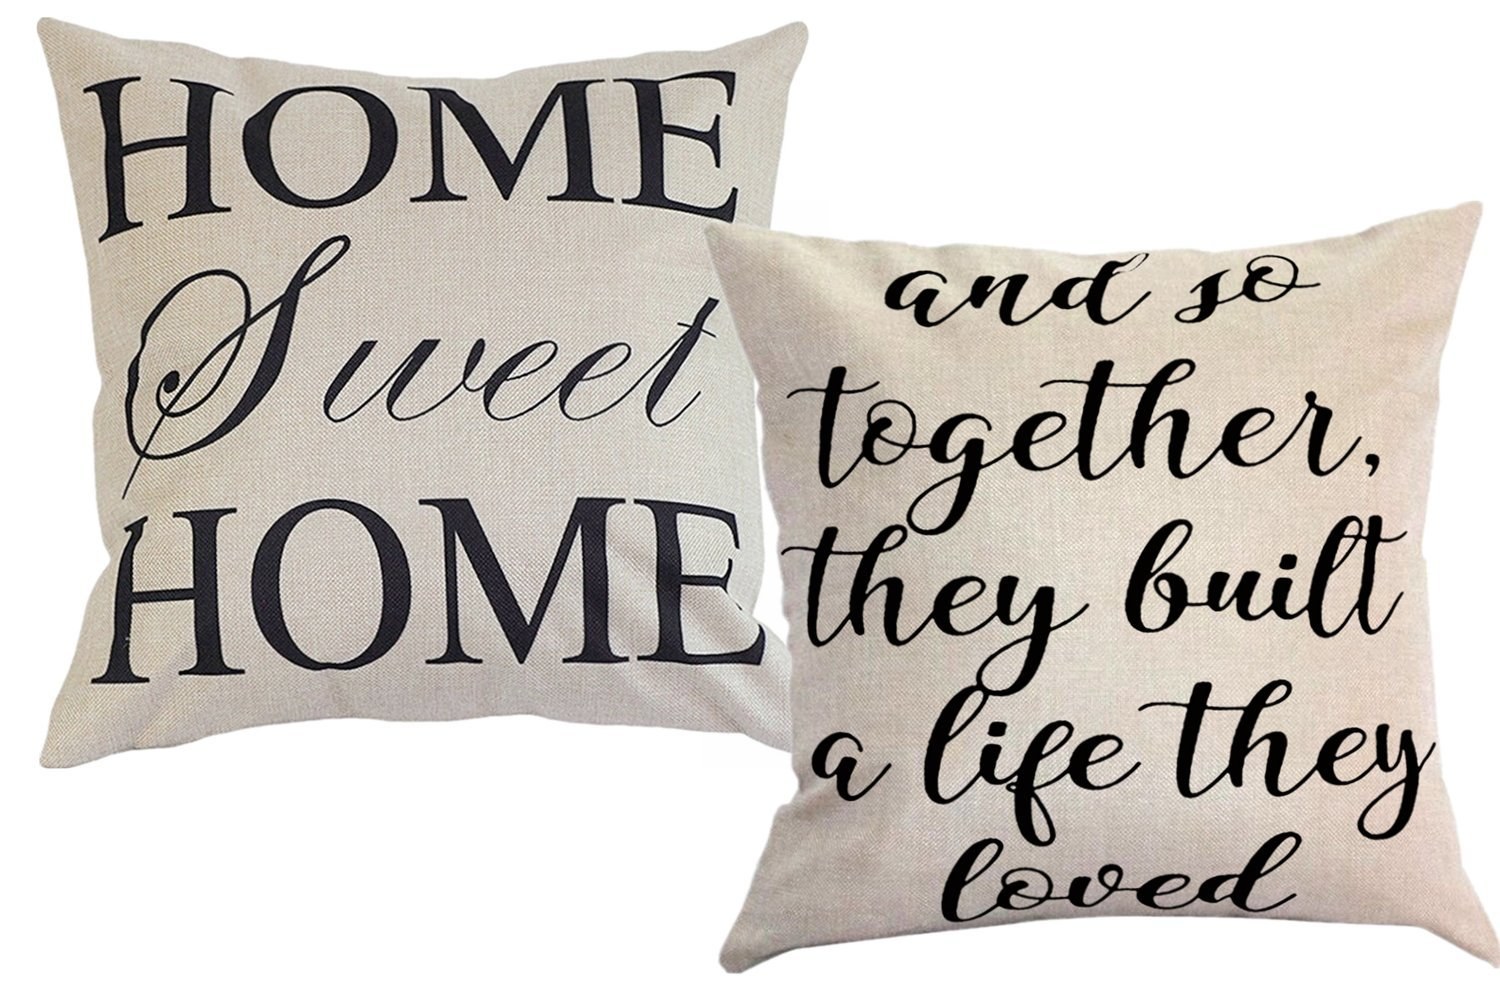 Foozoup Farmhouse Style Decorative Throw Pillow Case Cushion Cover 18'' x 18'' for Sofa Couch Home Sweet Home Cotton Linen and So Together They Built a Life They Loved by Foozoup